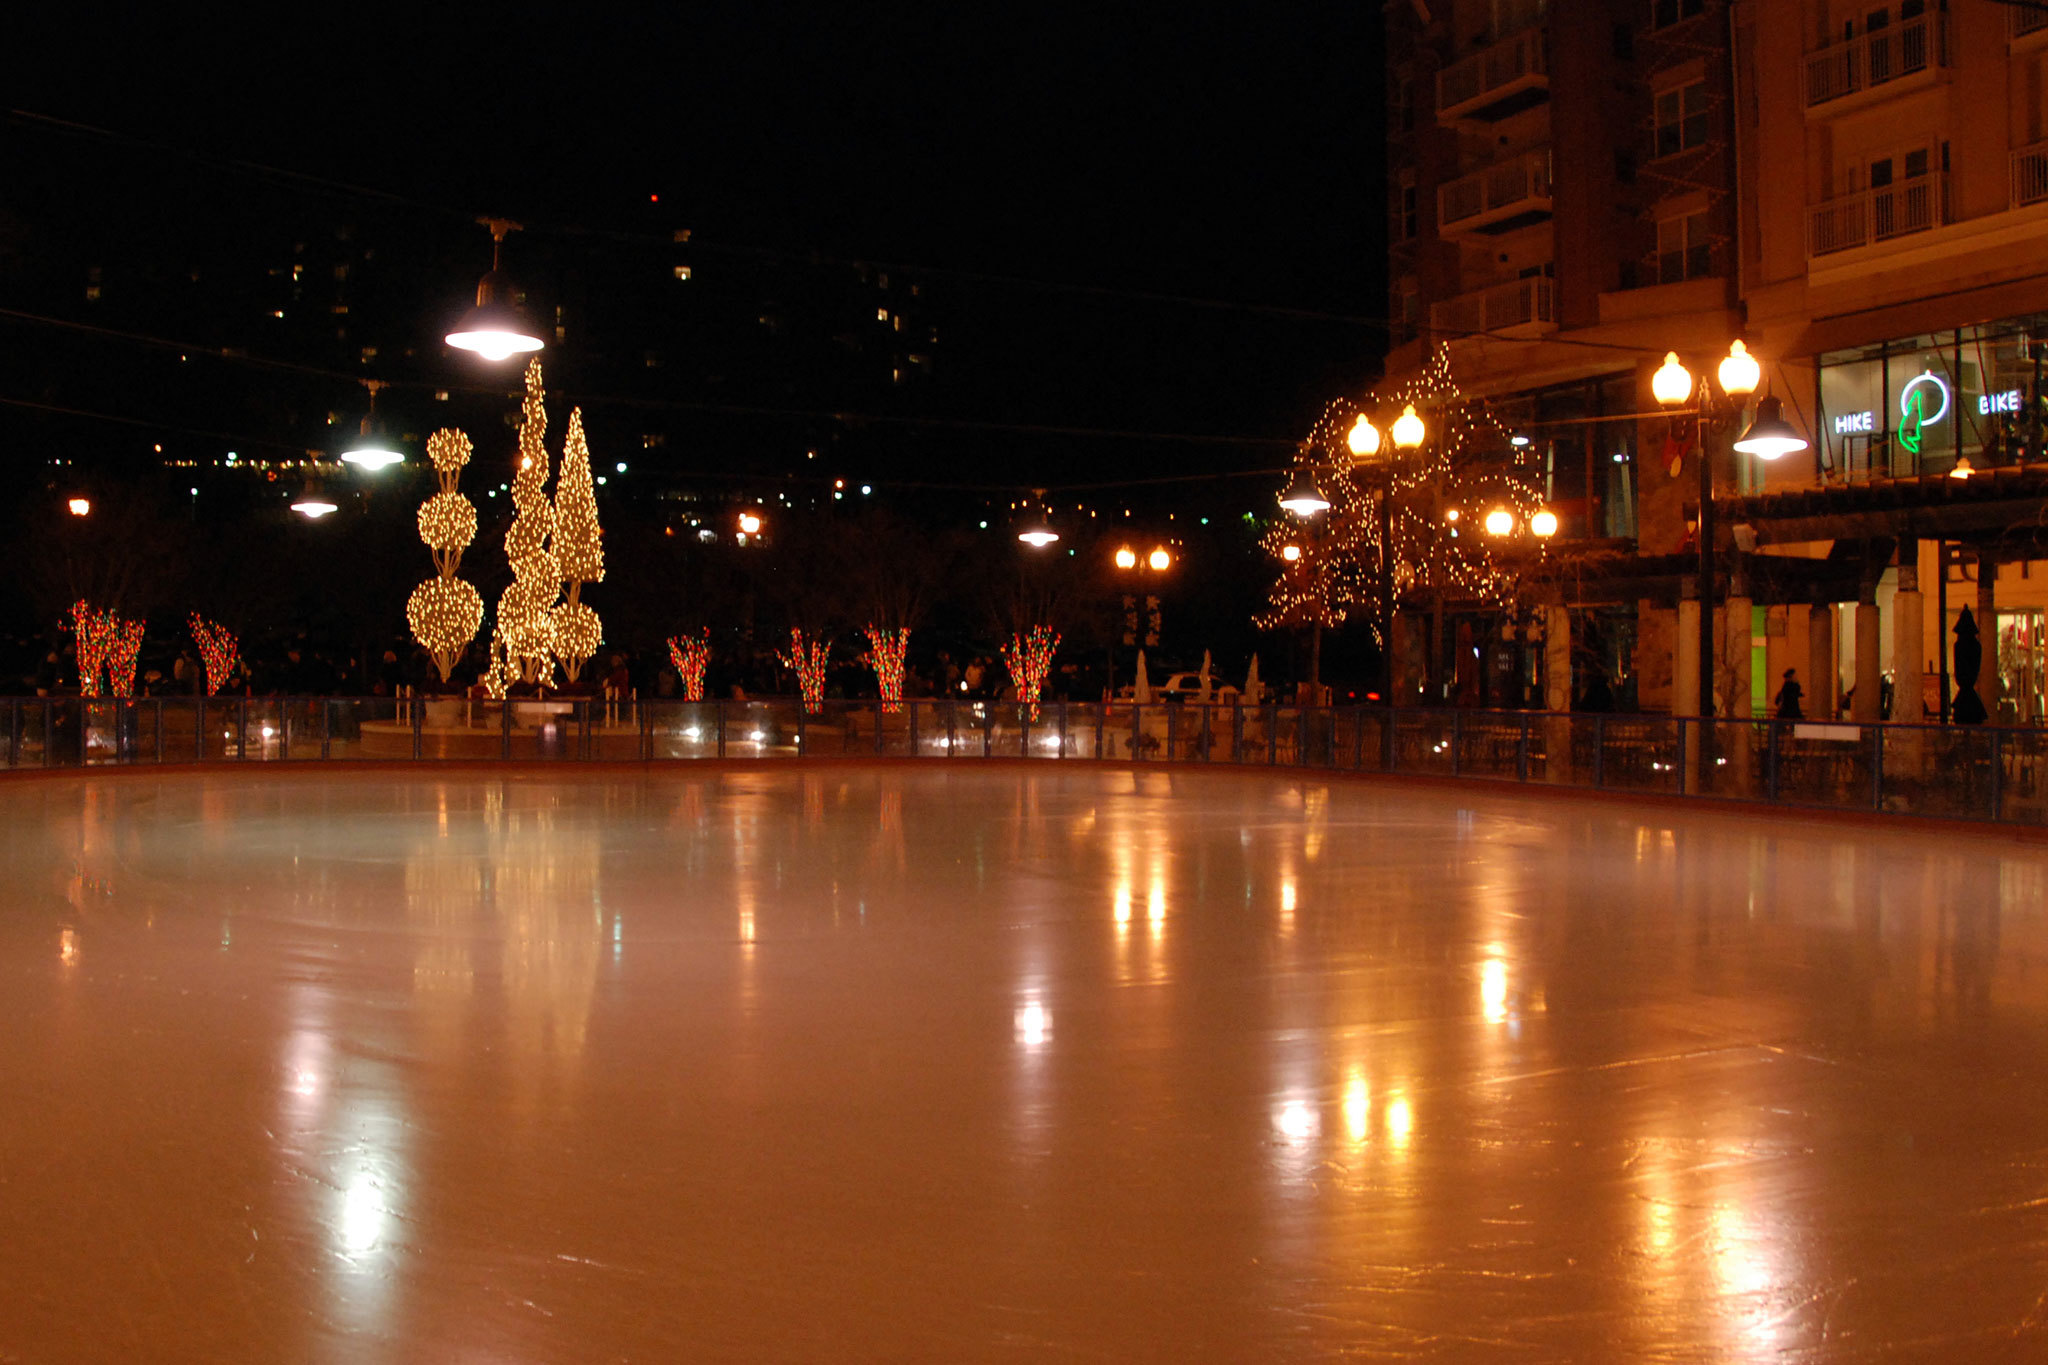 Ice-skating rinks in DC, including indoor and outdoor rinks